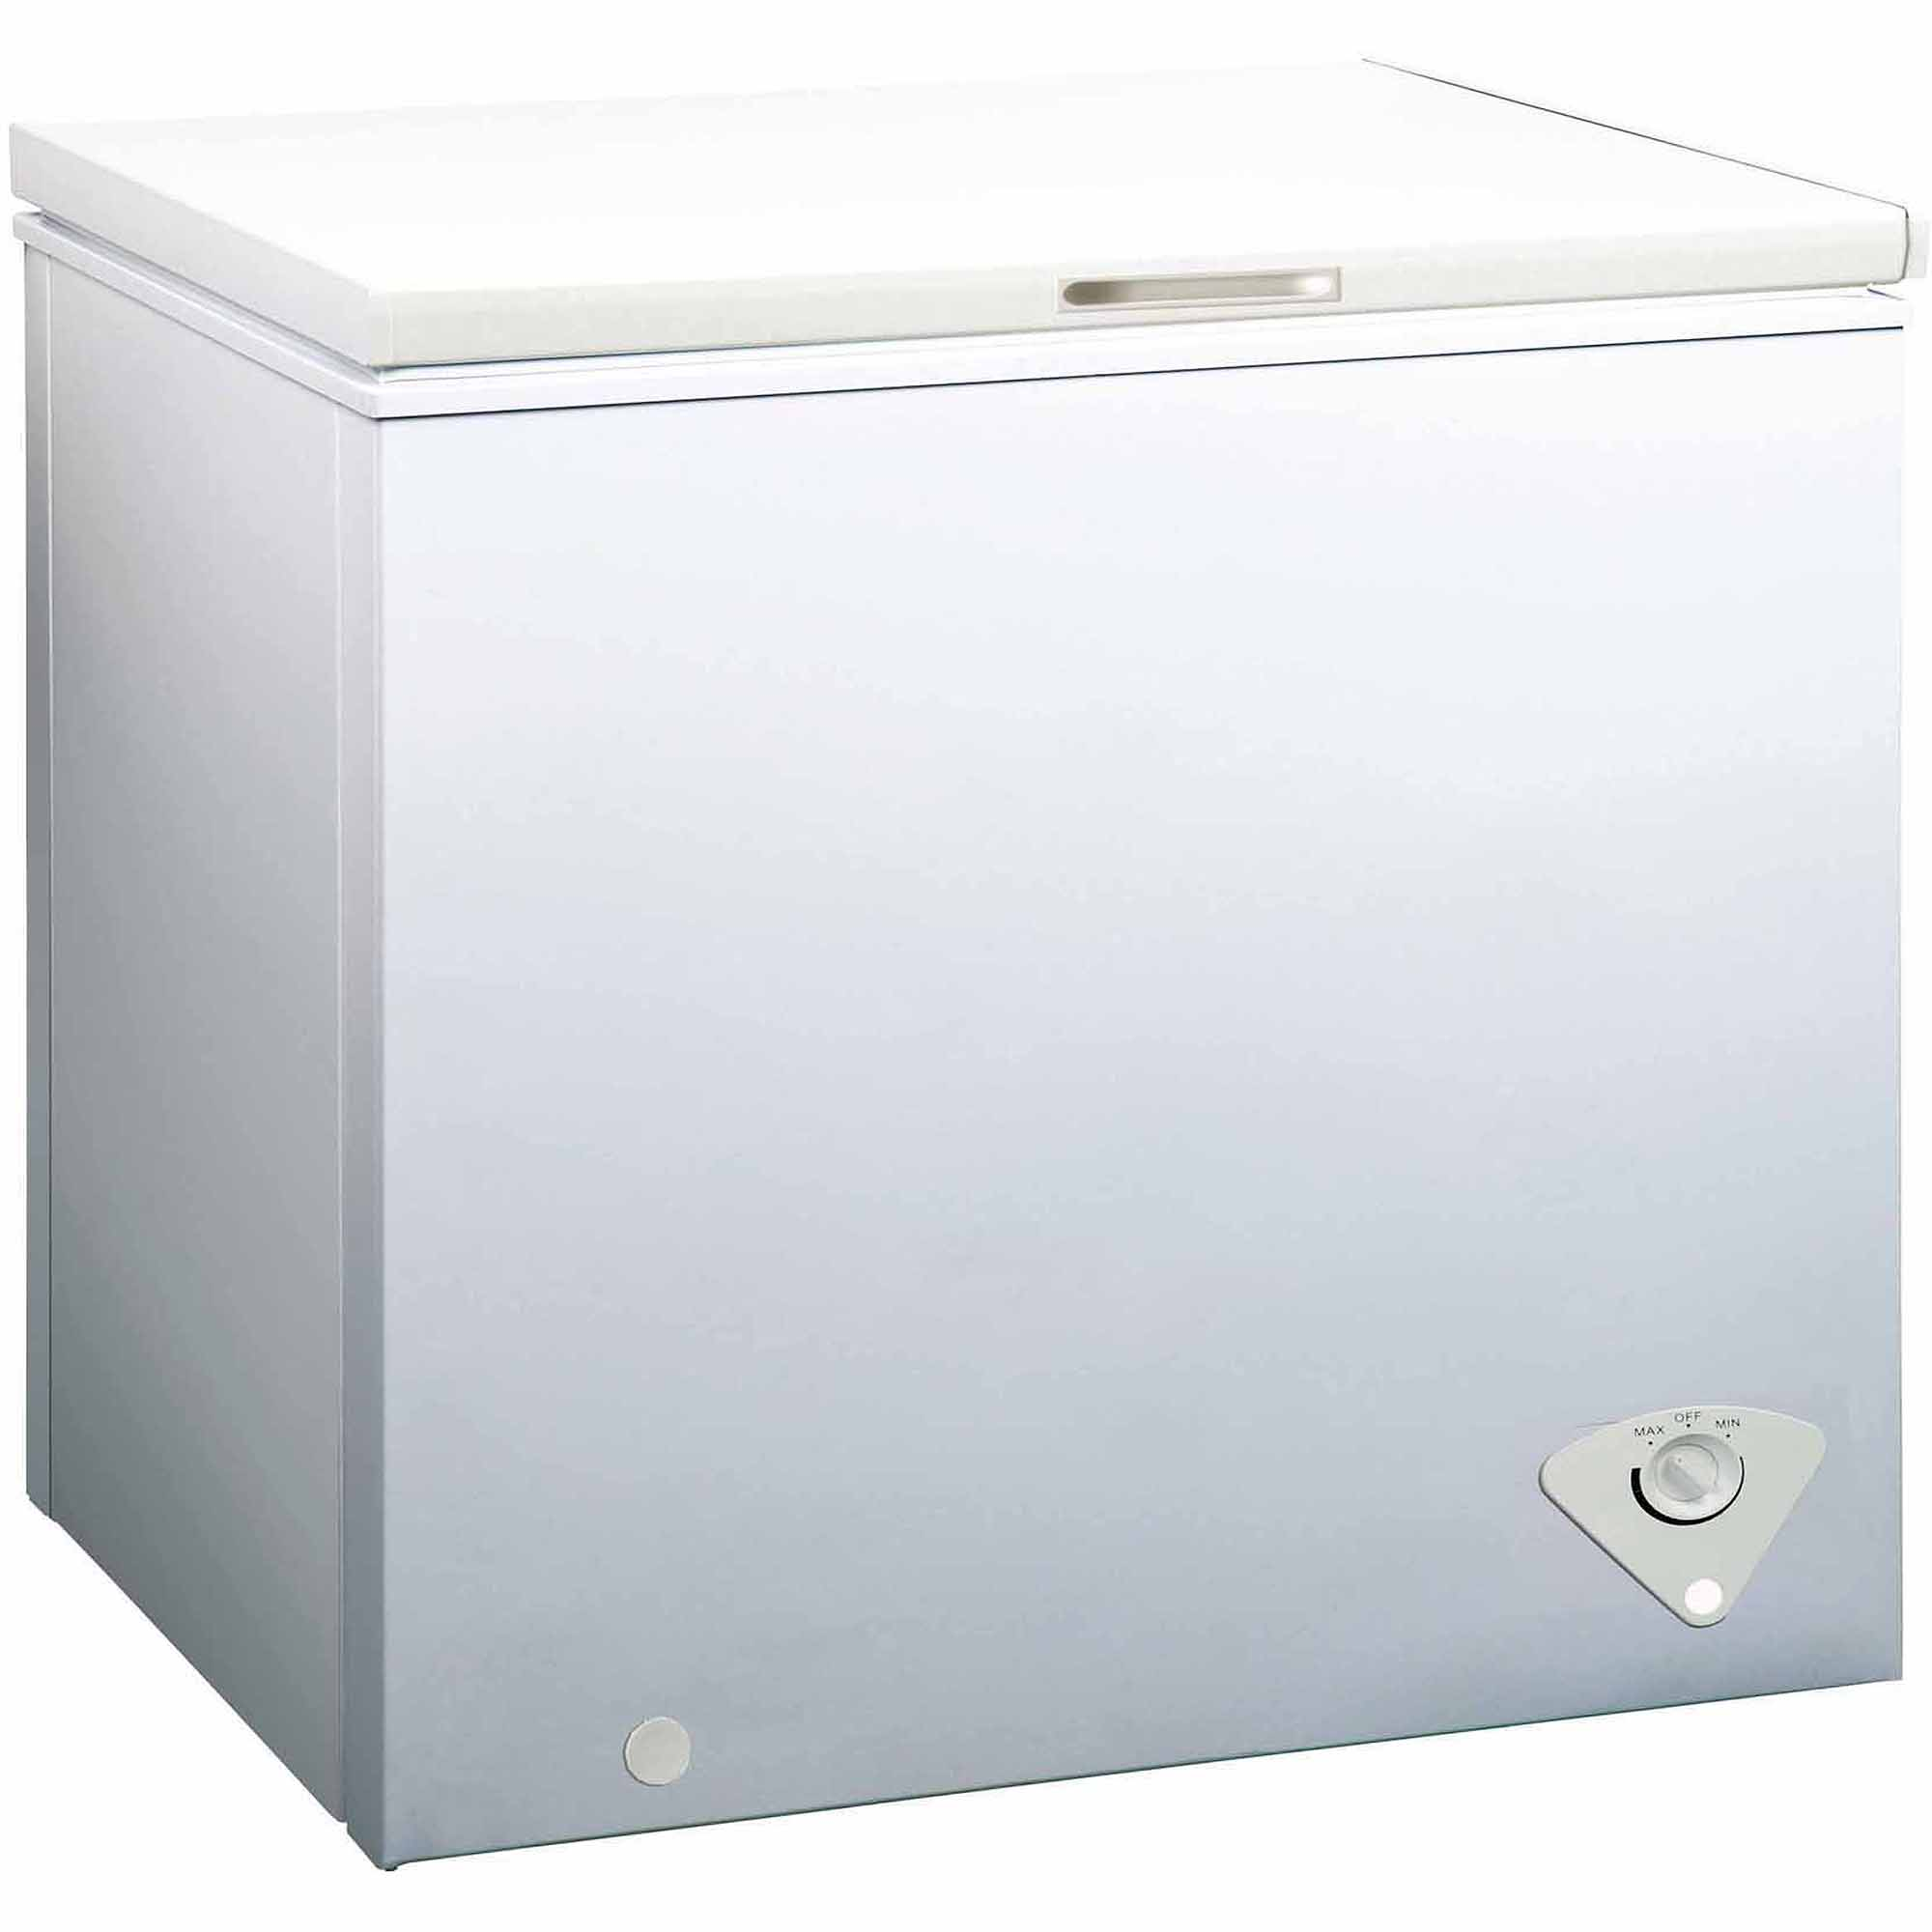 Equator-Midea 7.0 cu ft Chest Freezer with Removable storage basket, White